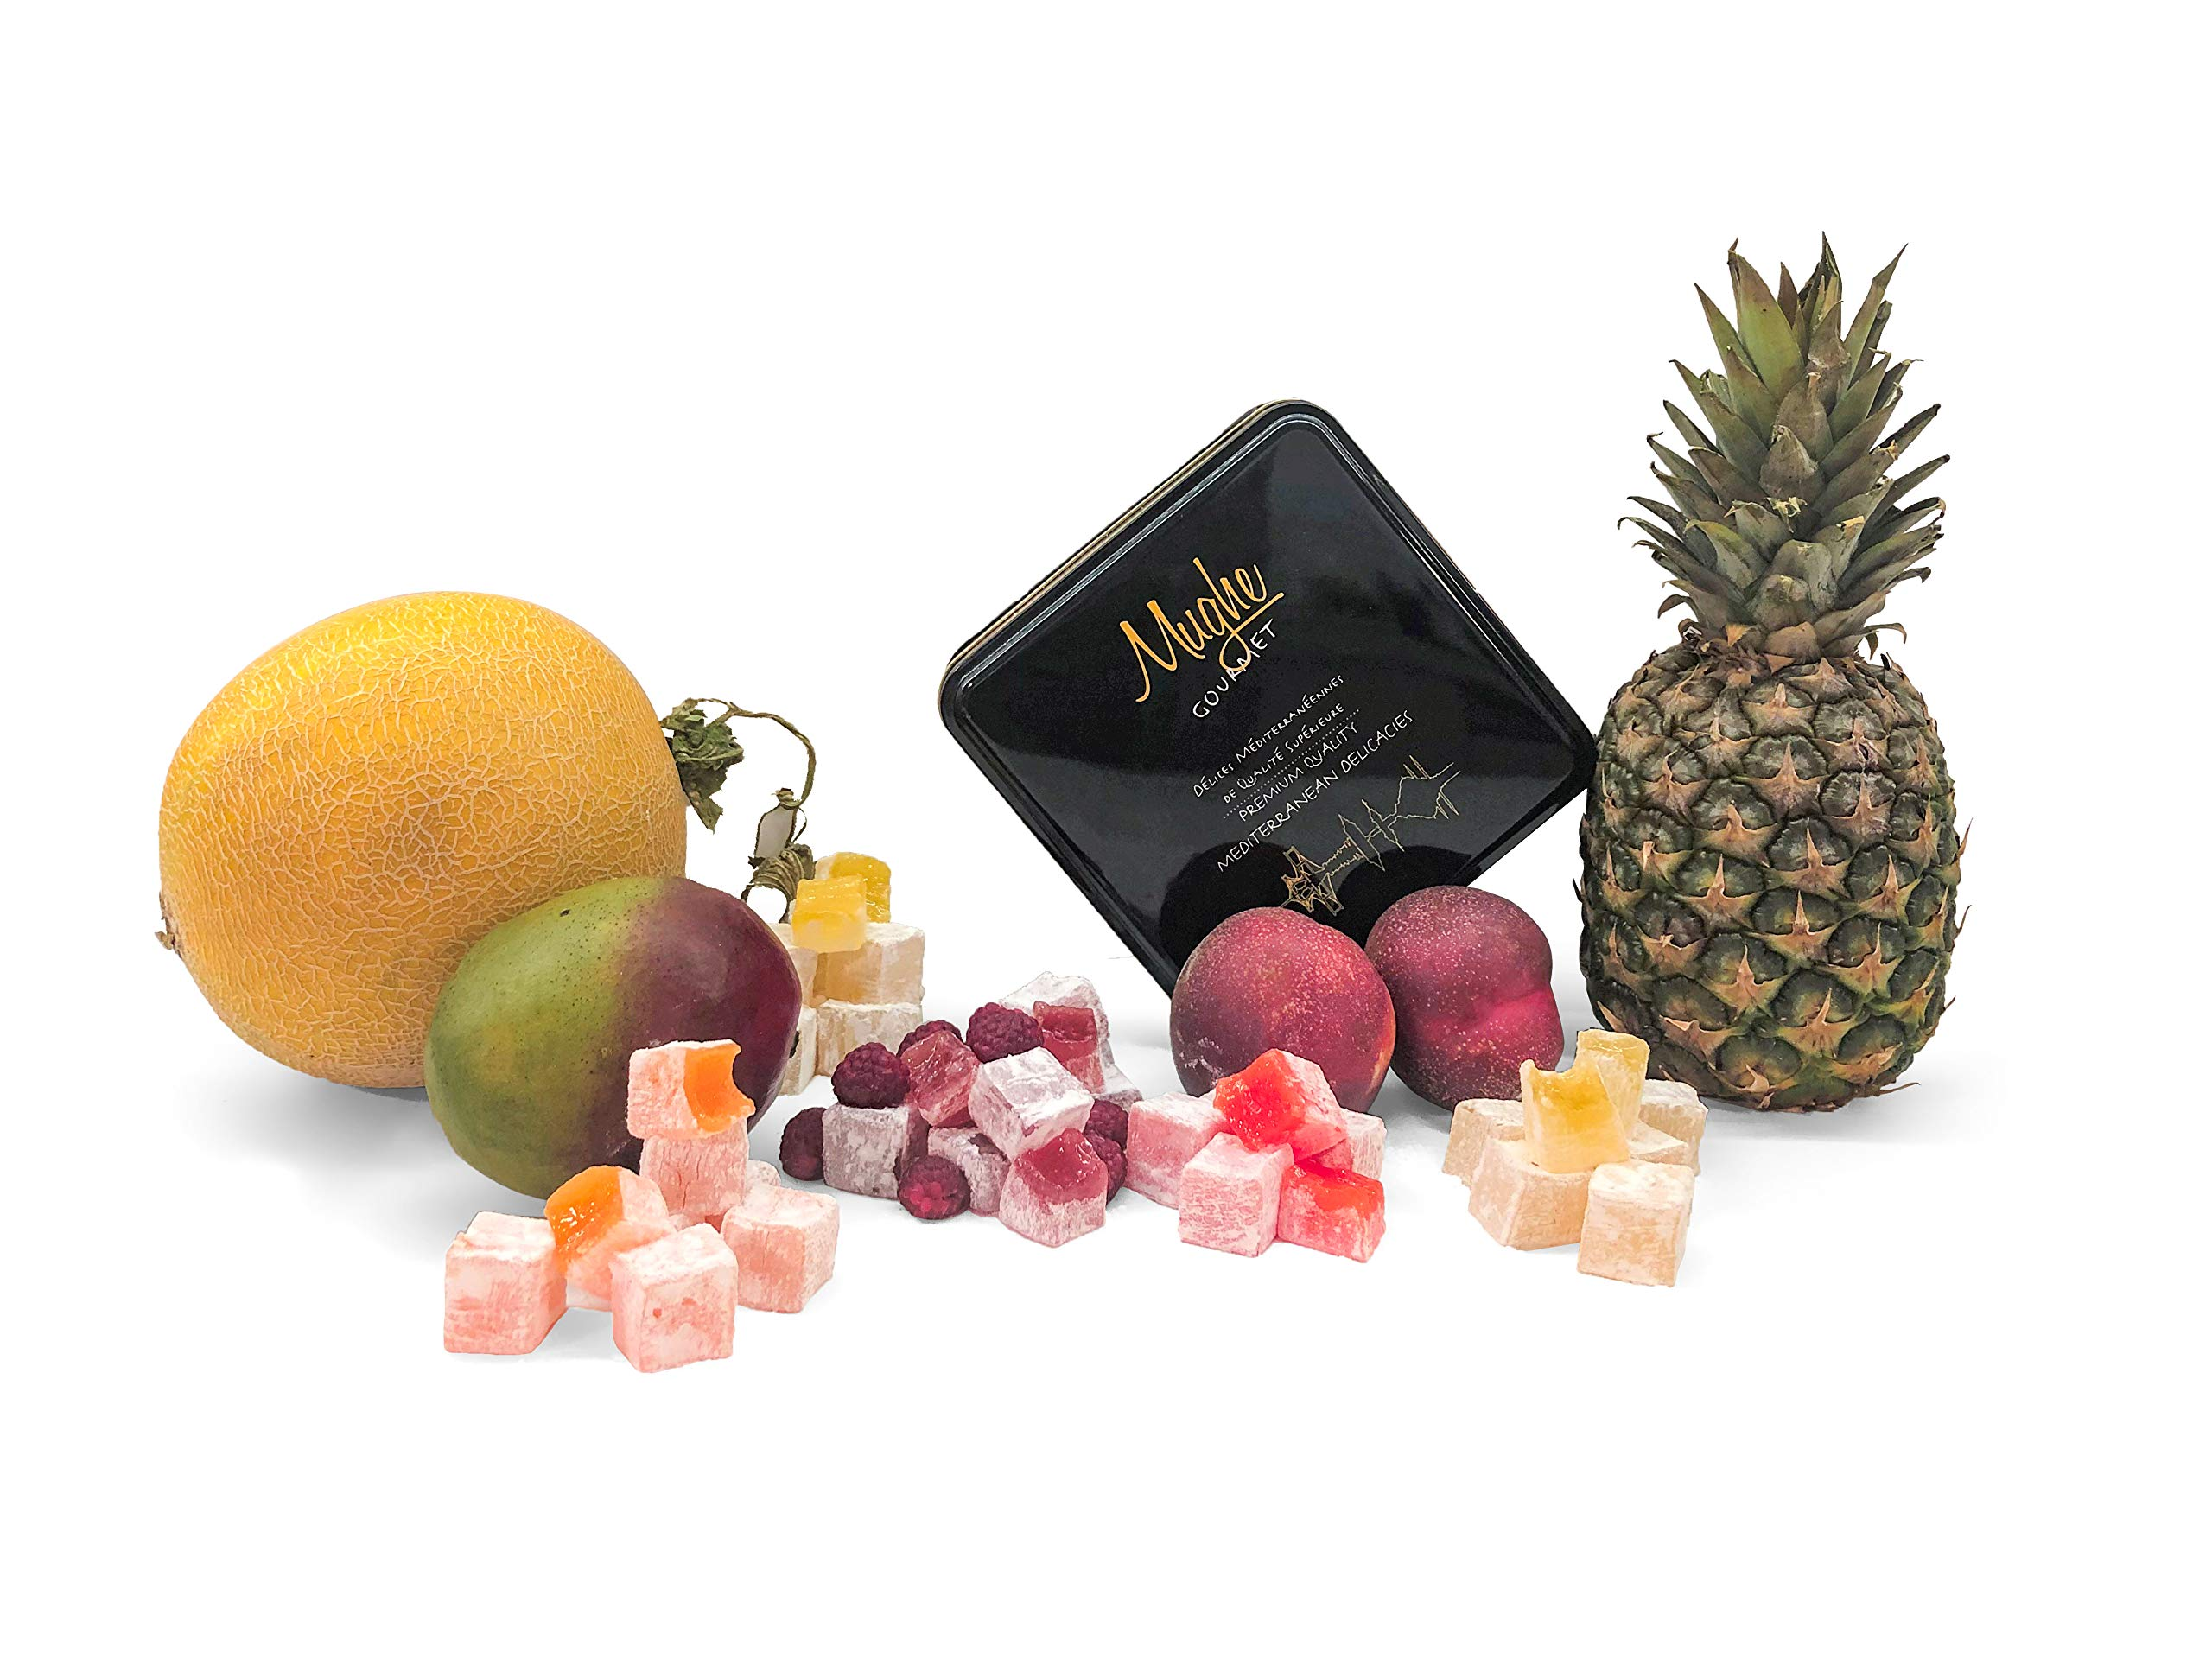 Mughe Mix Plain Turkish Delight Tin Box 1.250 kg (No Nuts) - Tropical Breeze 5 Different Flavors: Mango, Peach, Melon, Pineapple, Raspberry - 100 Pcs Approx. (Gift Basket Tin Box 3 Pounds, 48 Oz)